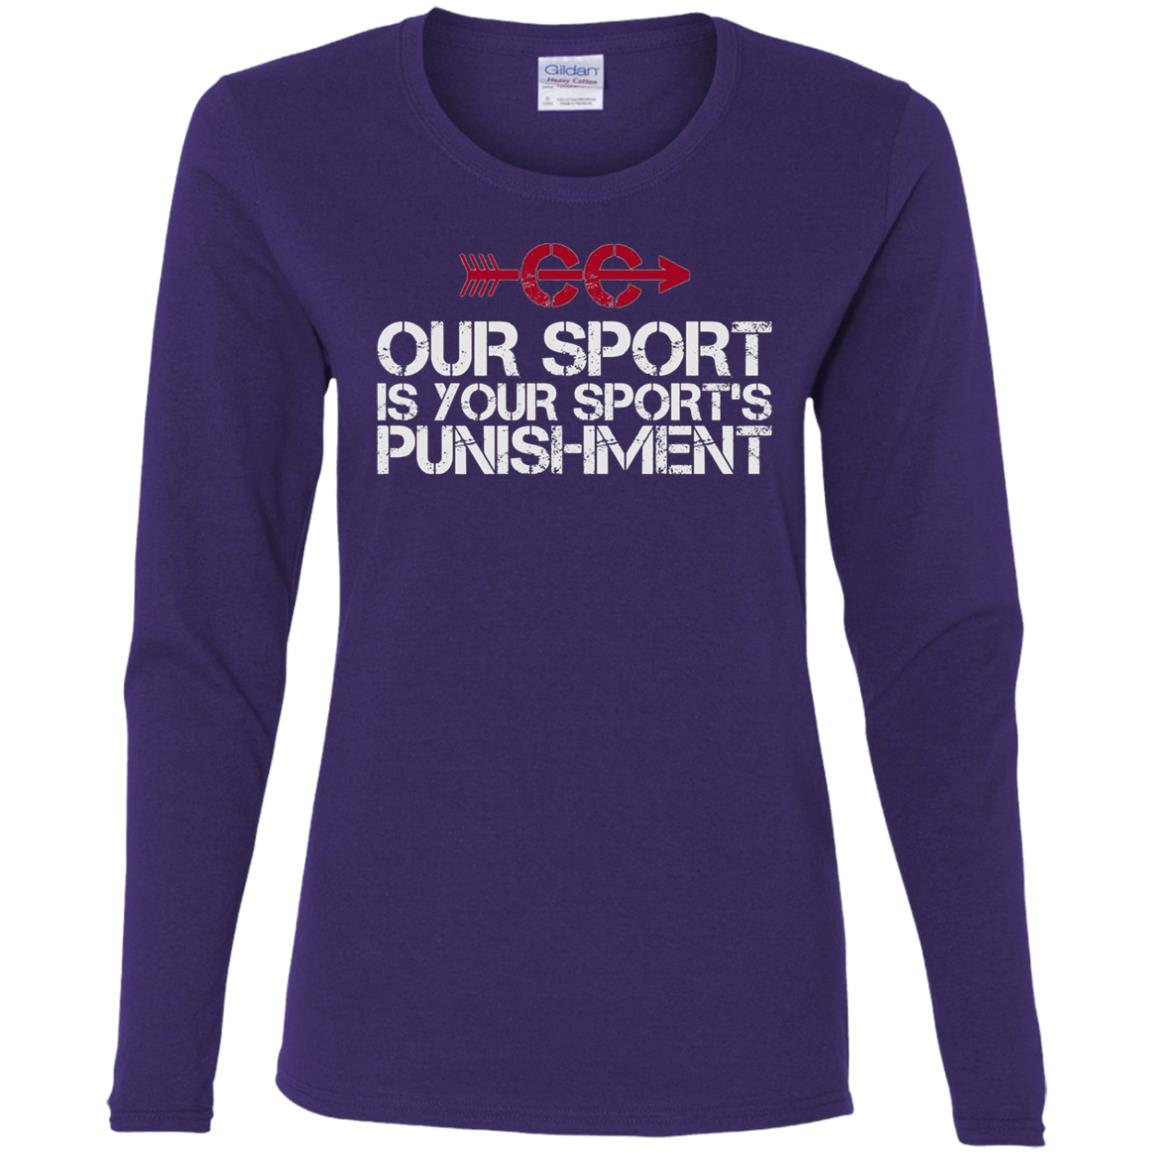 Cross Country Our Sport is your Sport's Punishment XC Run Women Long Sleeve T-Shirt